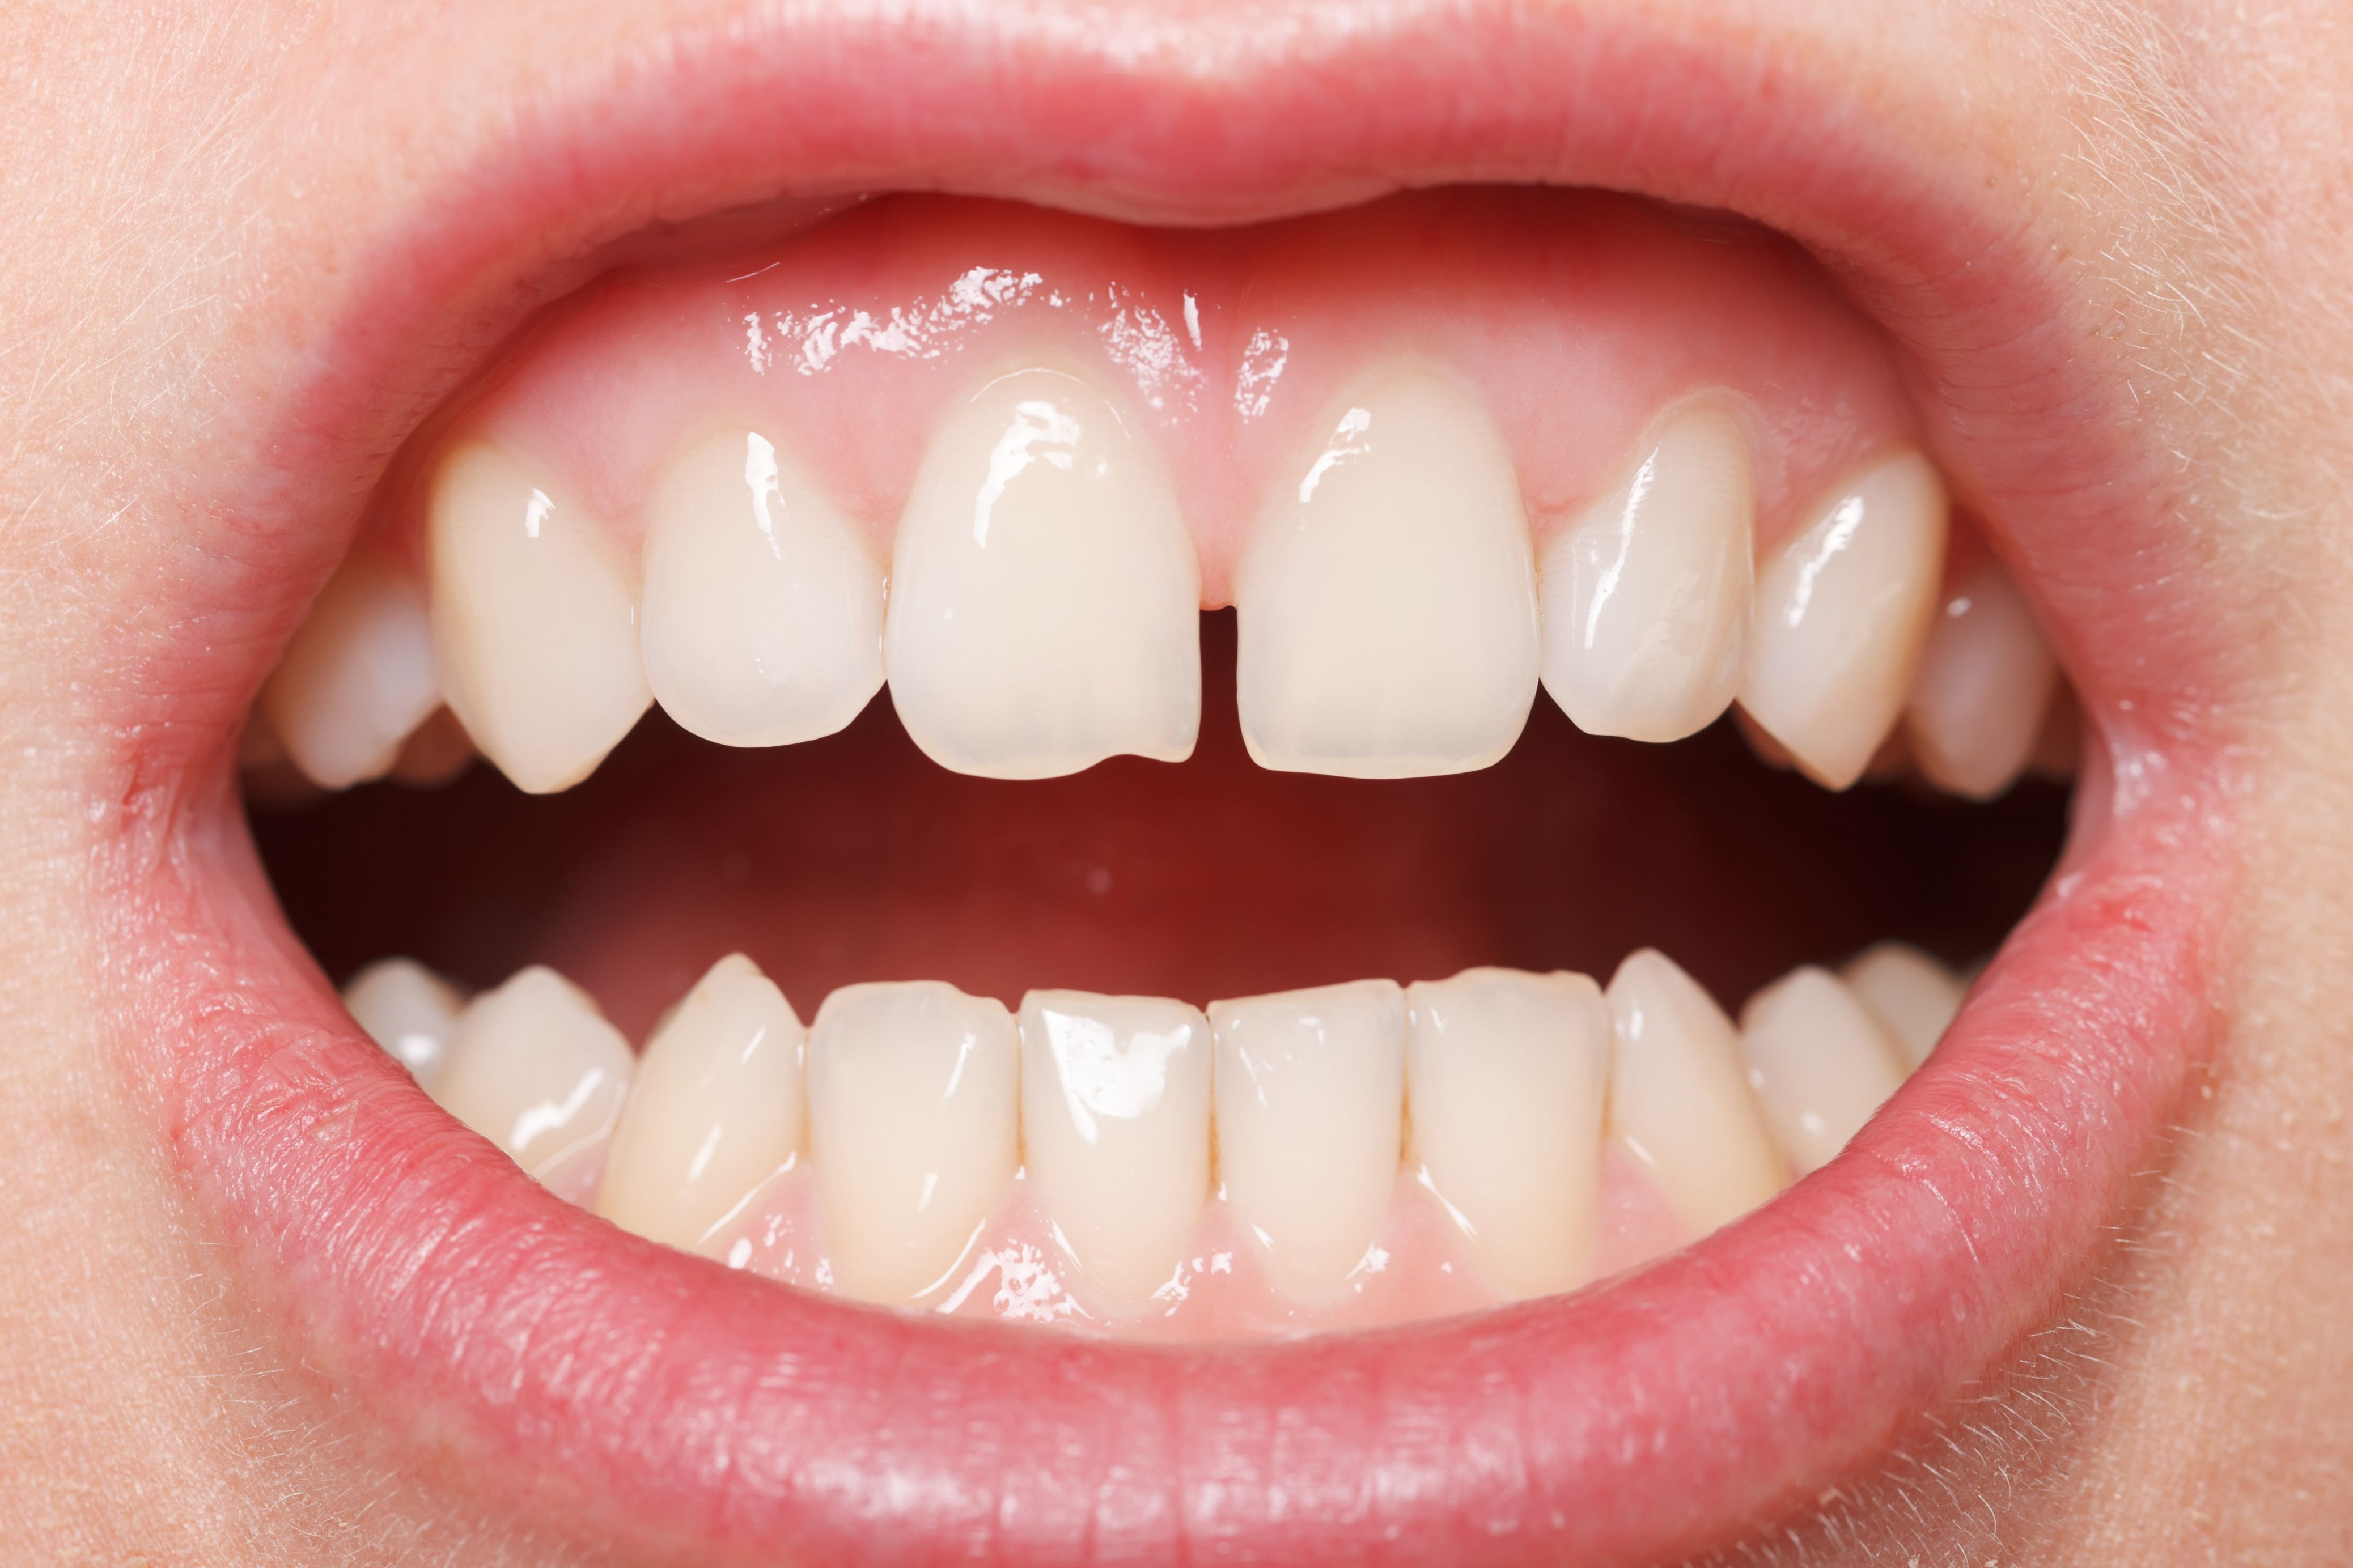 A person with a chipped tooth and gap